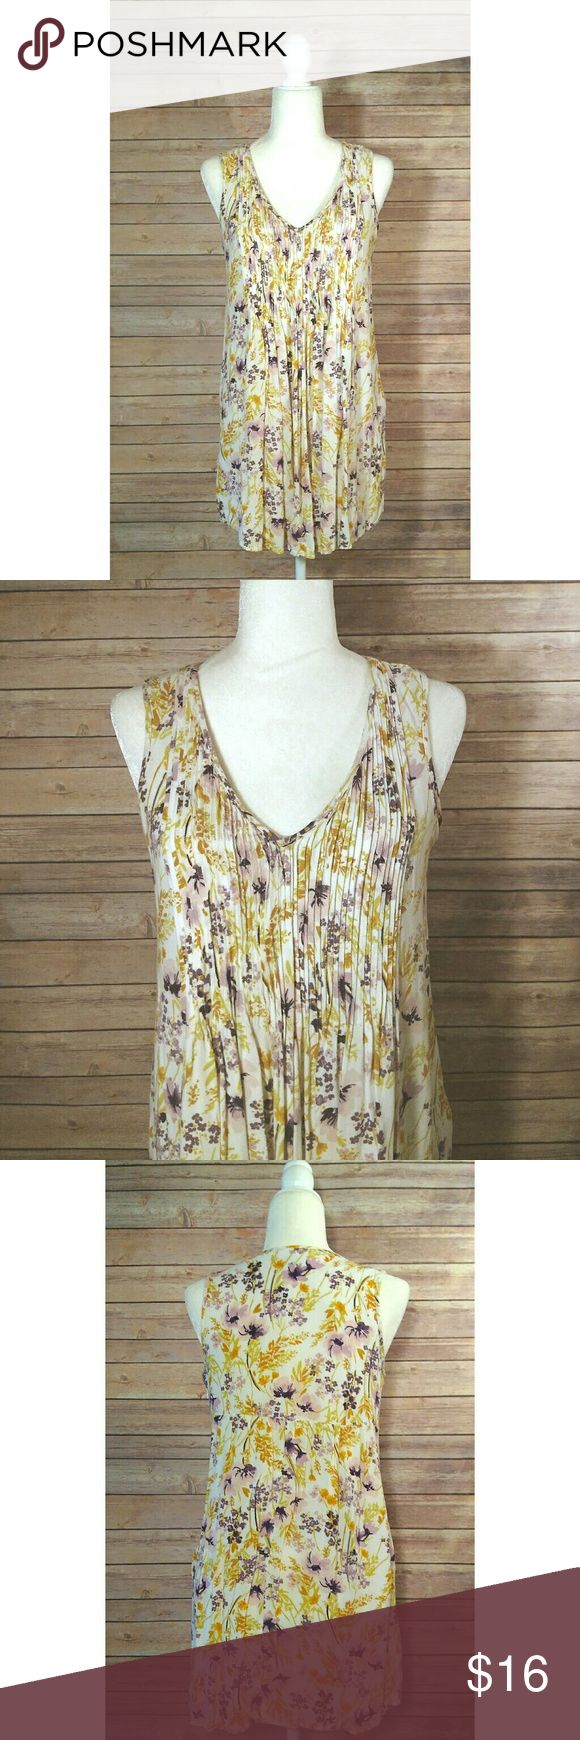 Old Navy floral pleated v-neck sleeveless tunic Old Navy tunic top in a cream color with a yellow and lavander floral print.  It has a v-neck and the upper part of the front is pleated.  It is a sleeveless tunic top.  It is a two layer tunic, the floral print fabric is a light gauzy fabric and the lining is a solid cream color fabric.  It has a zipper on the side.  It could also be worn as a short dress.   Pet free smoke free home. Old Navy Tops Tunics